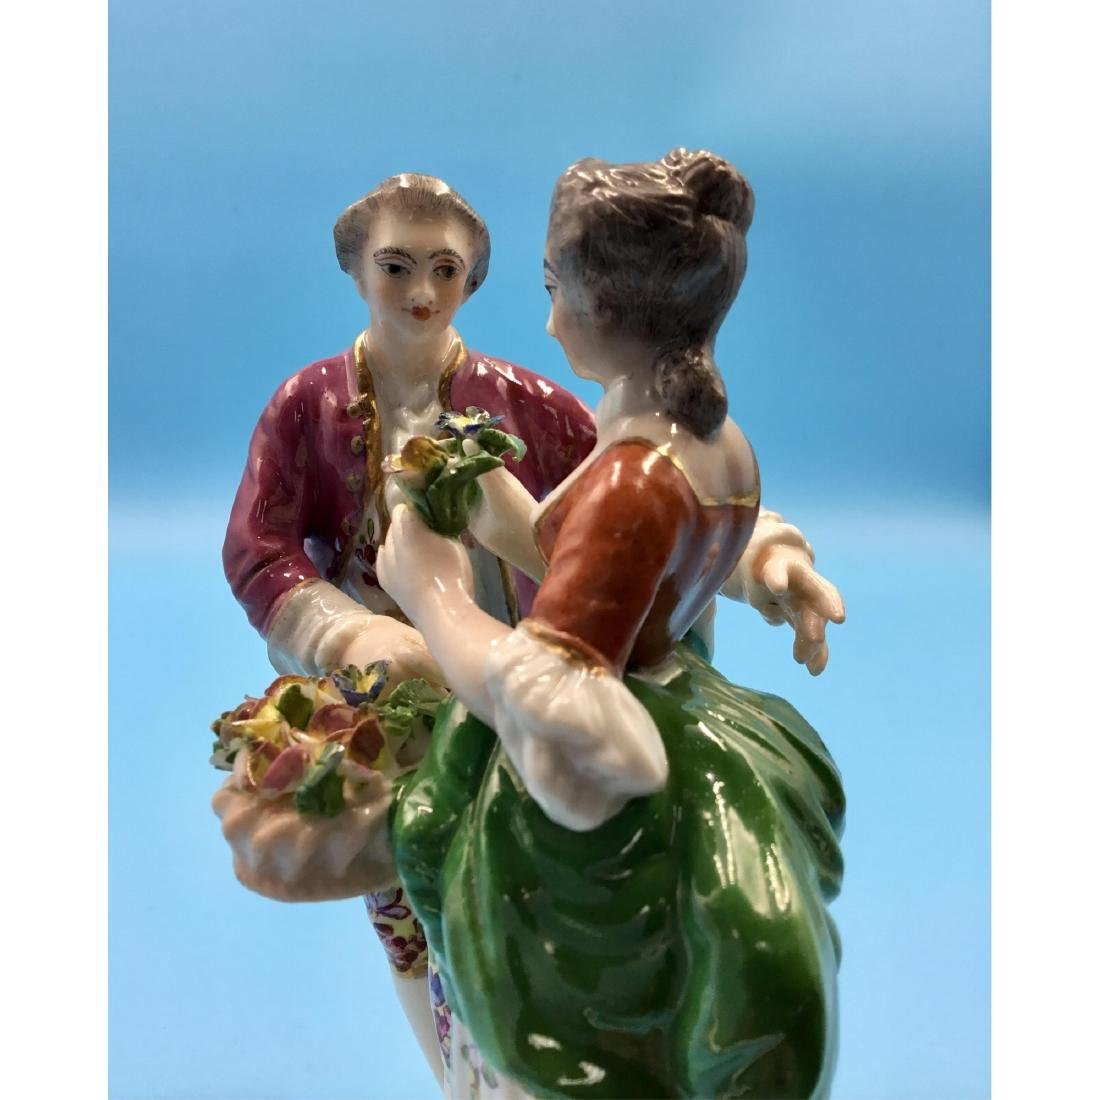 GROUP OF 3 SAMSON FRENCH PORCELAIN FIGURINES - 10